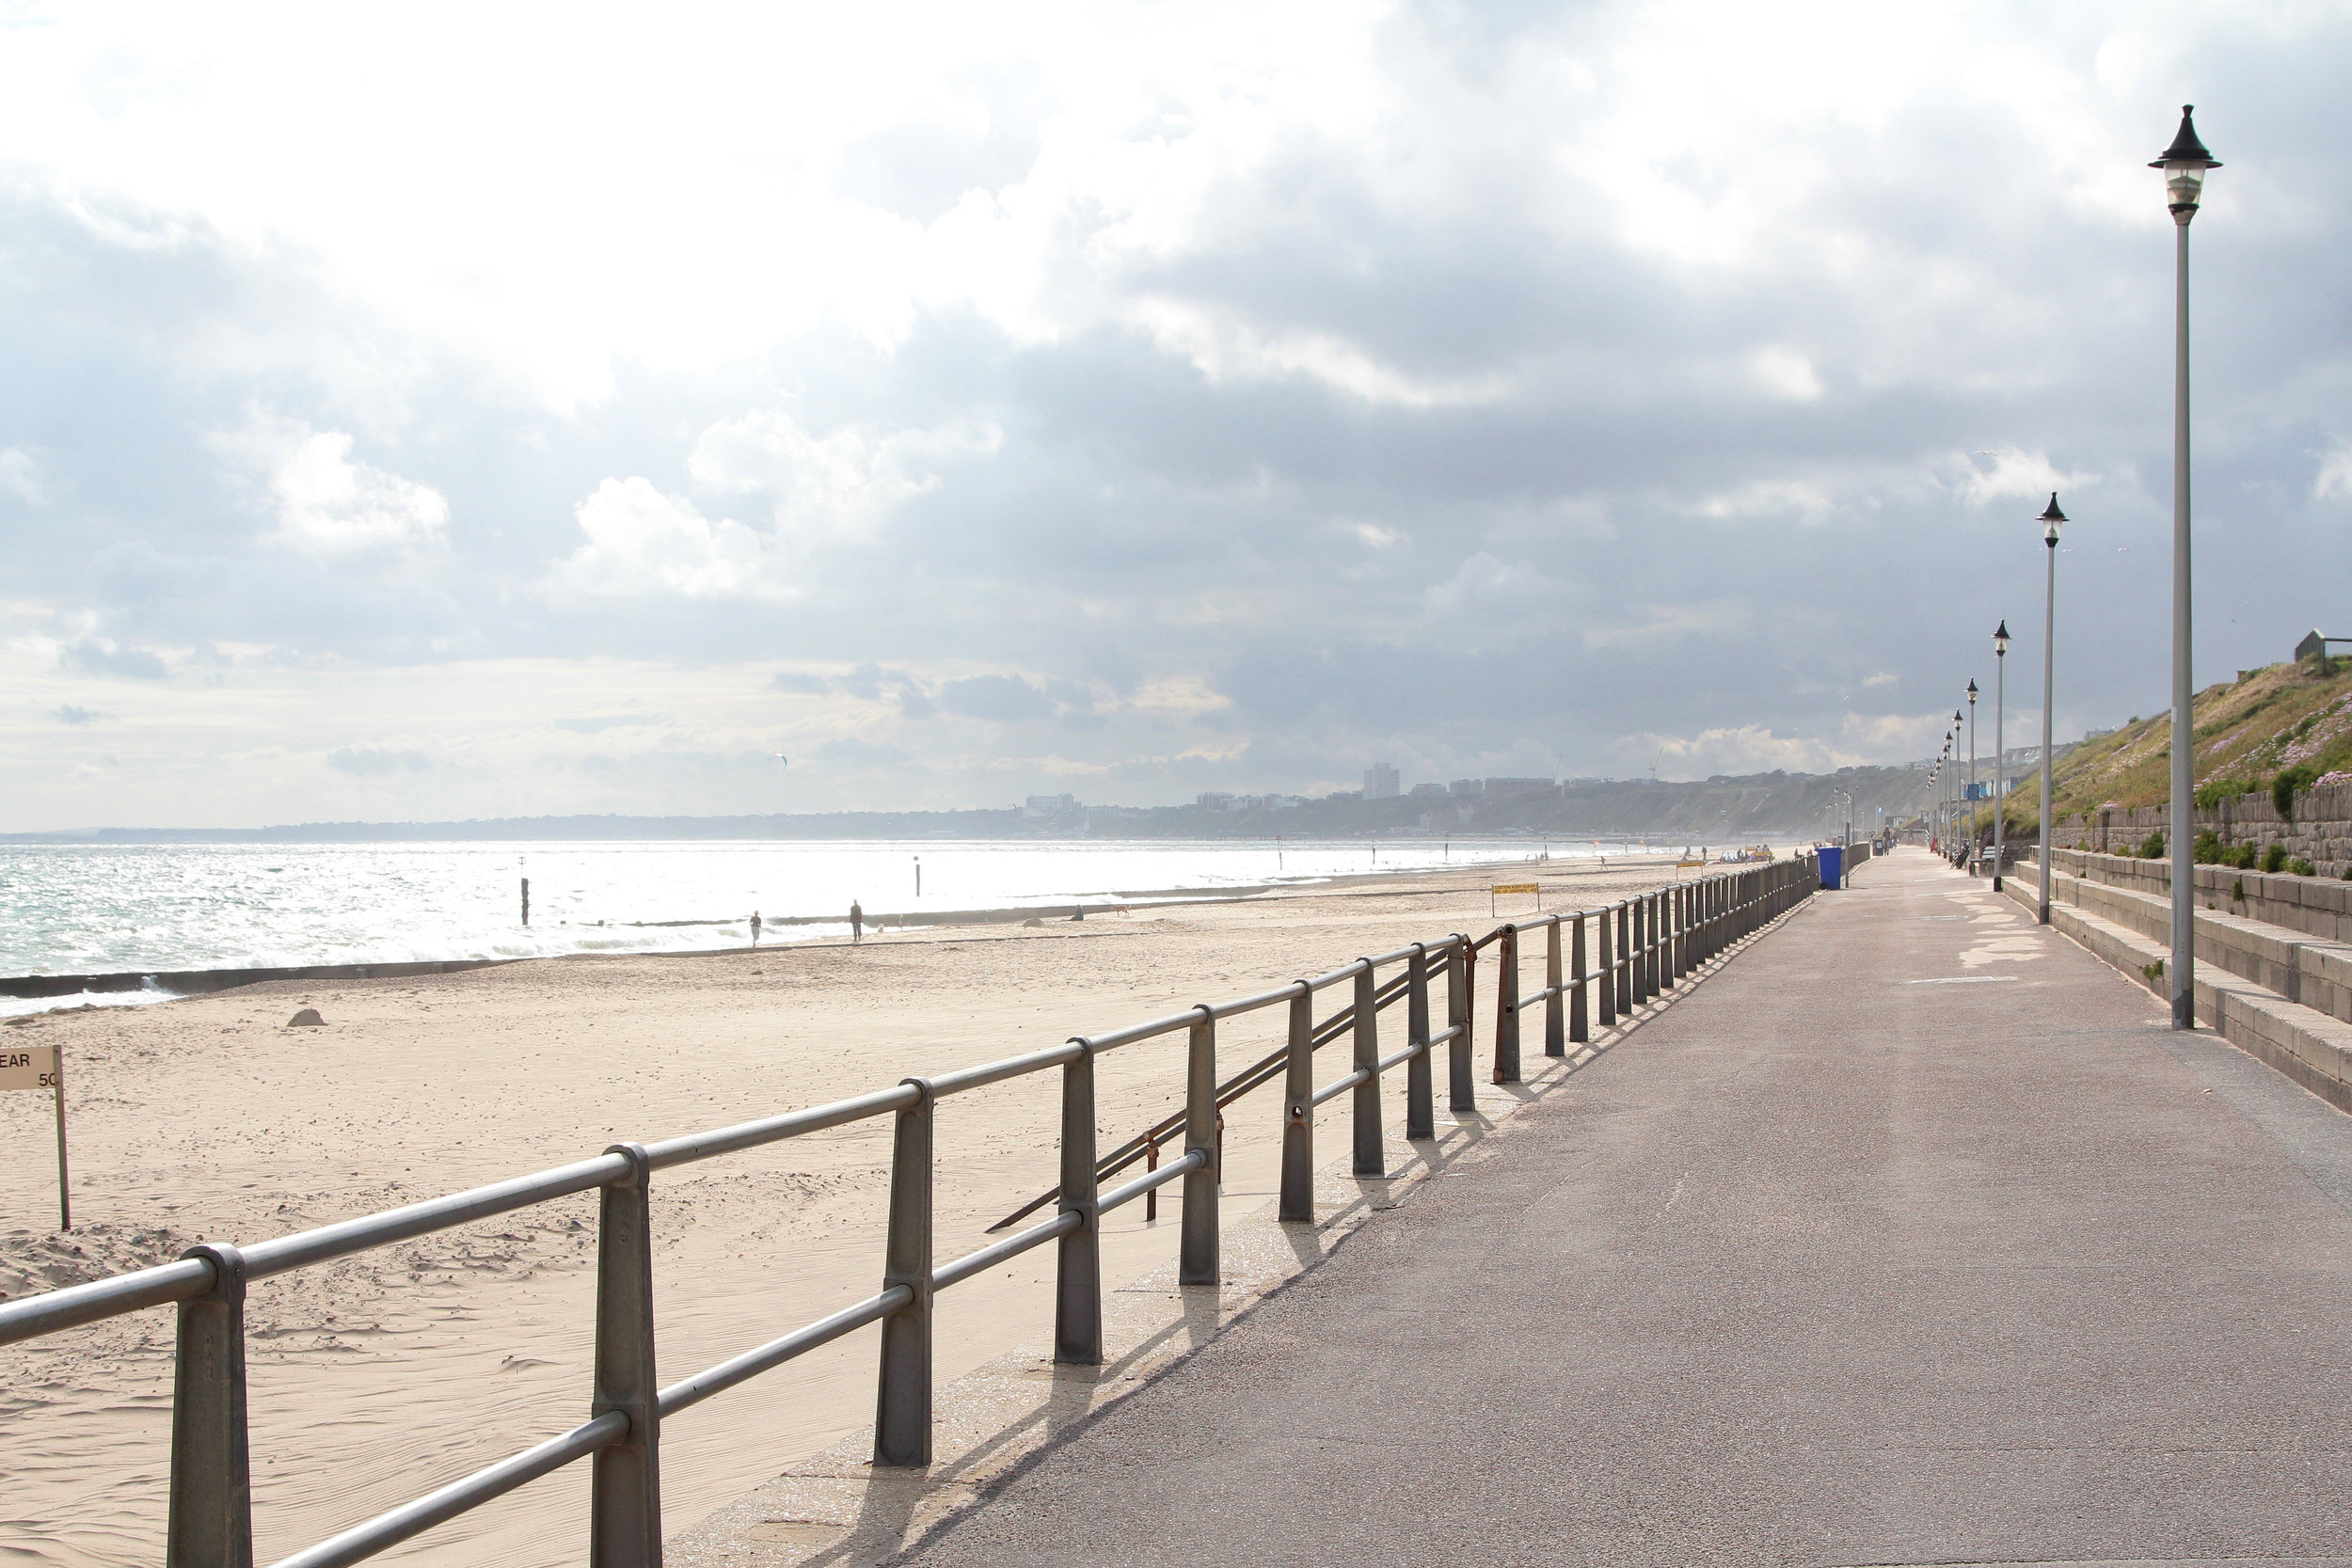 BreakPoint 'Marram' img30 -  Local View of promenade from Southbourne to Sandbanks.jpg